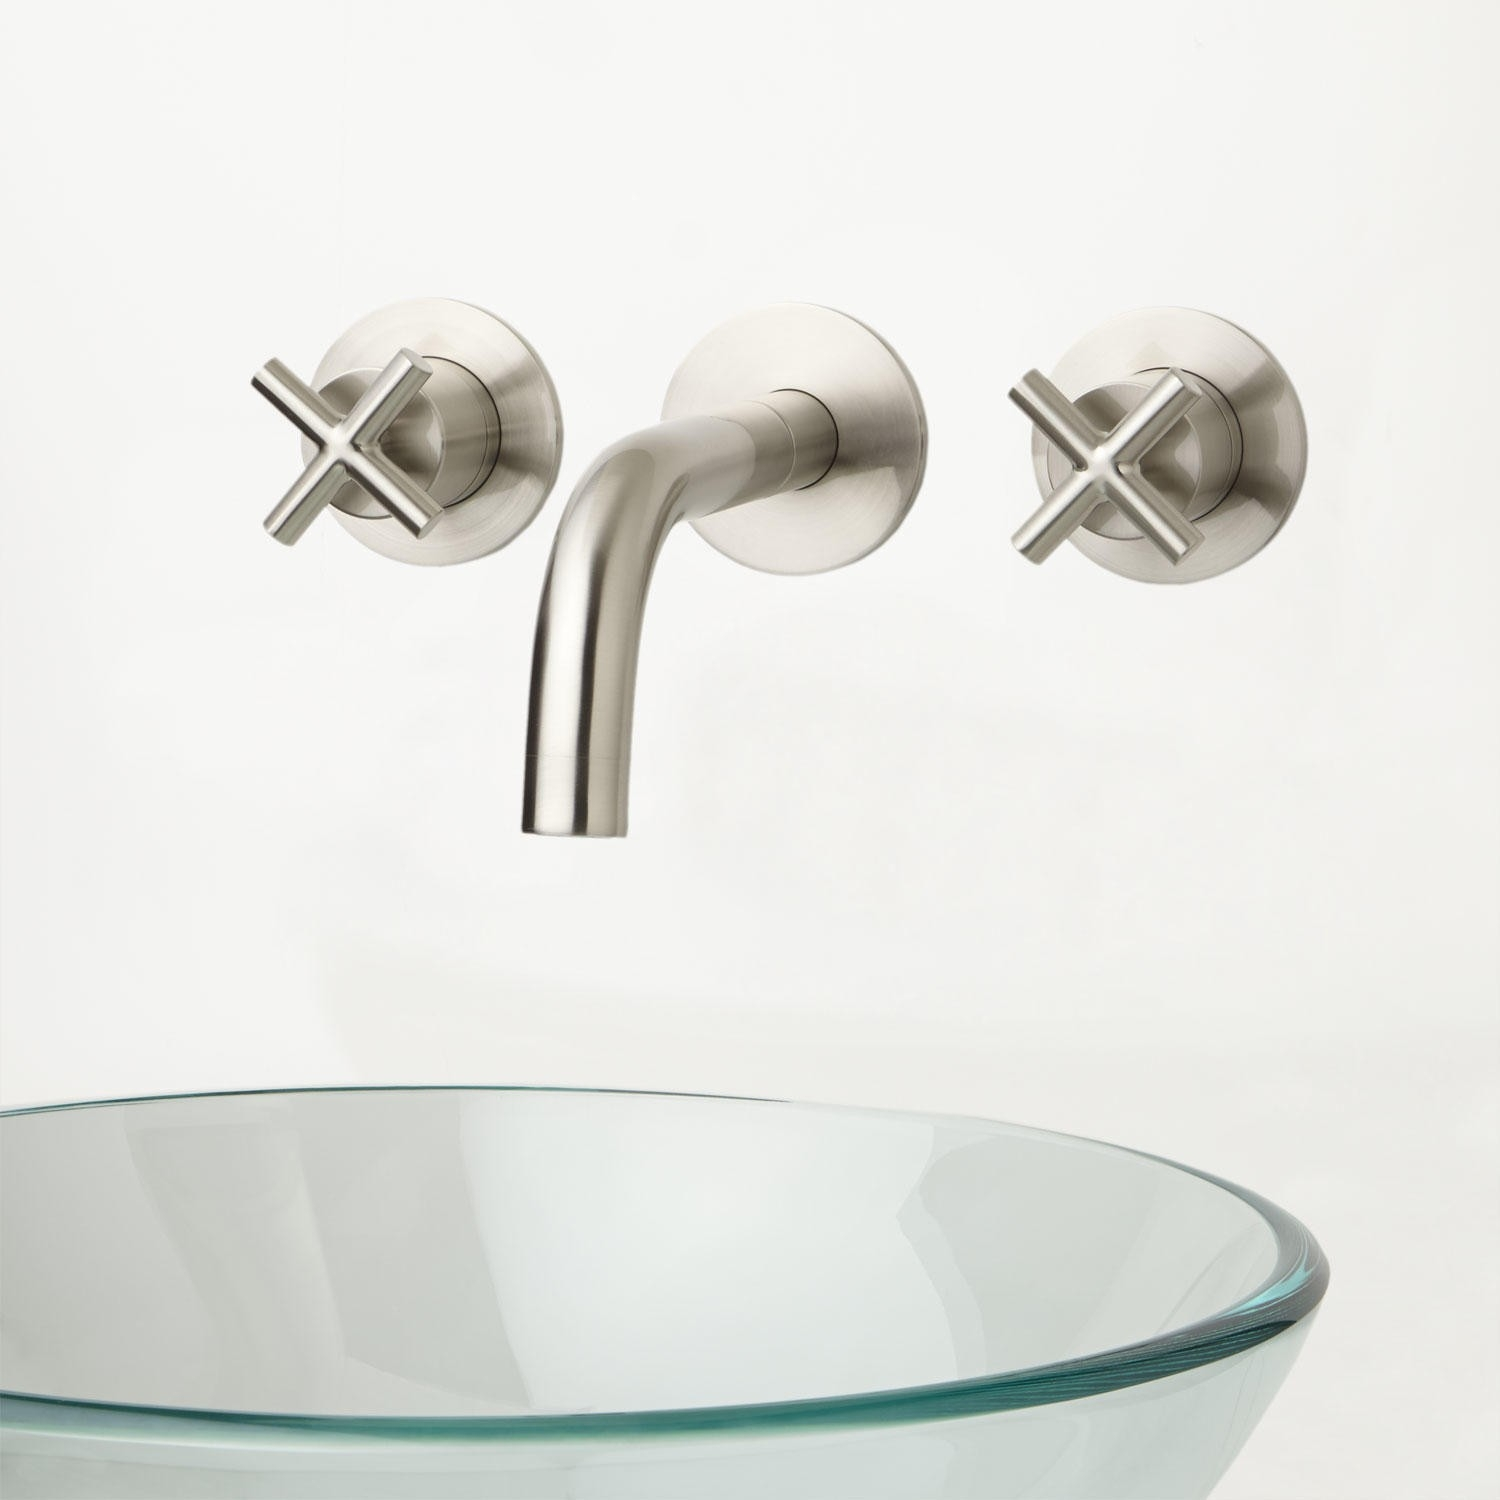 Ideas, vintage wall mounted vessel sink faucet with double cross handles vintage wall mounted vessel sink faucet with double cross handles bathroom faucets lavatory faucets signature hardware 1500 x 1500  .